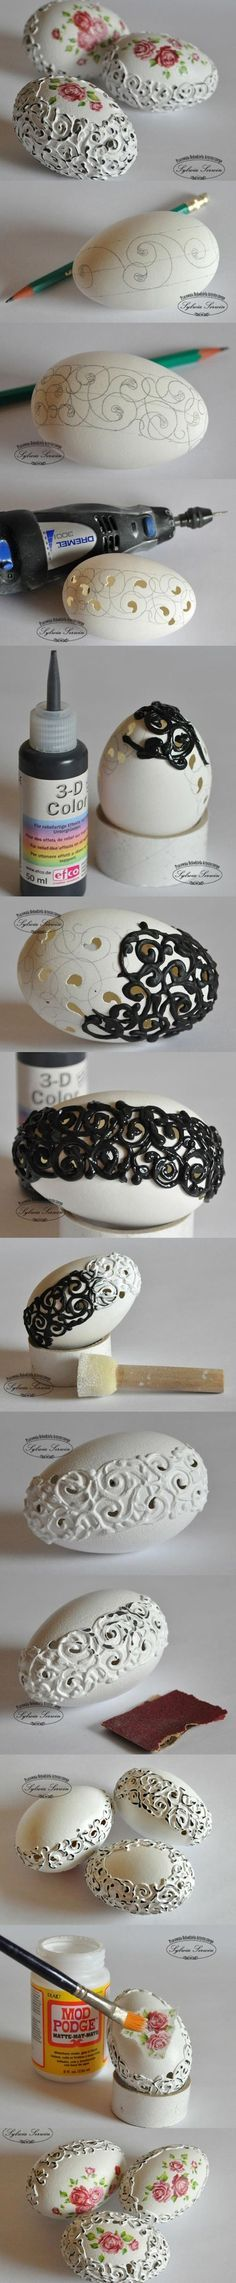 Stylish Easter Eggs. I love this idea and have all the stuff.